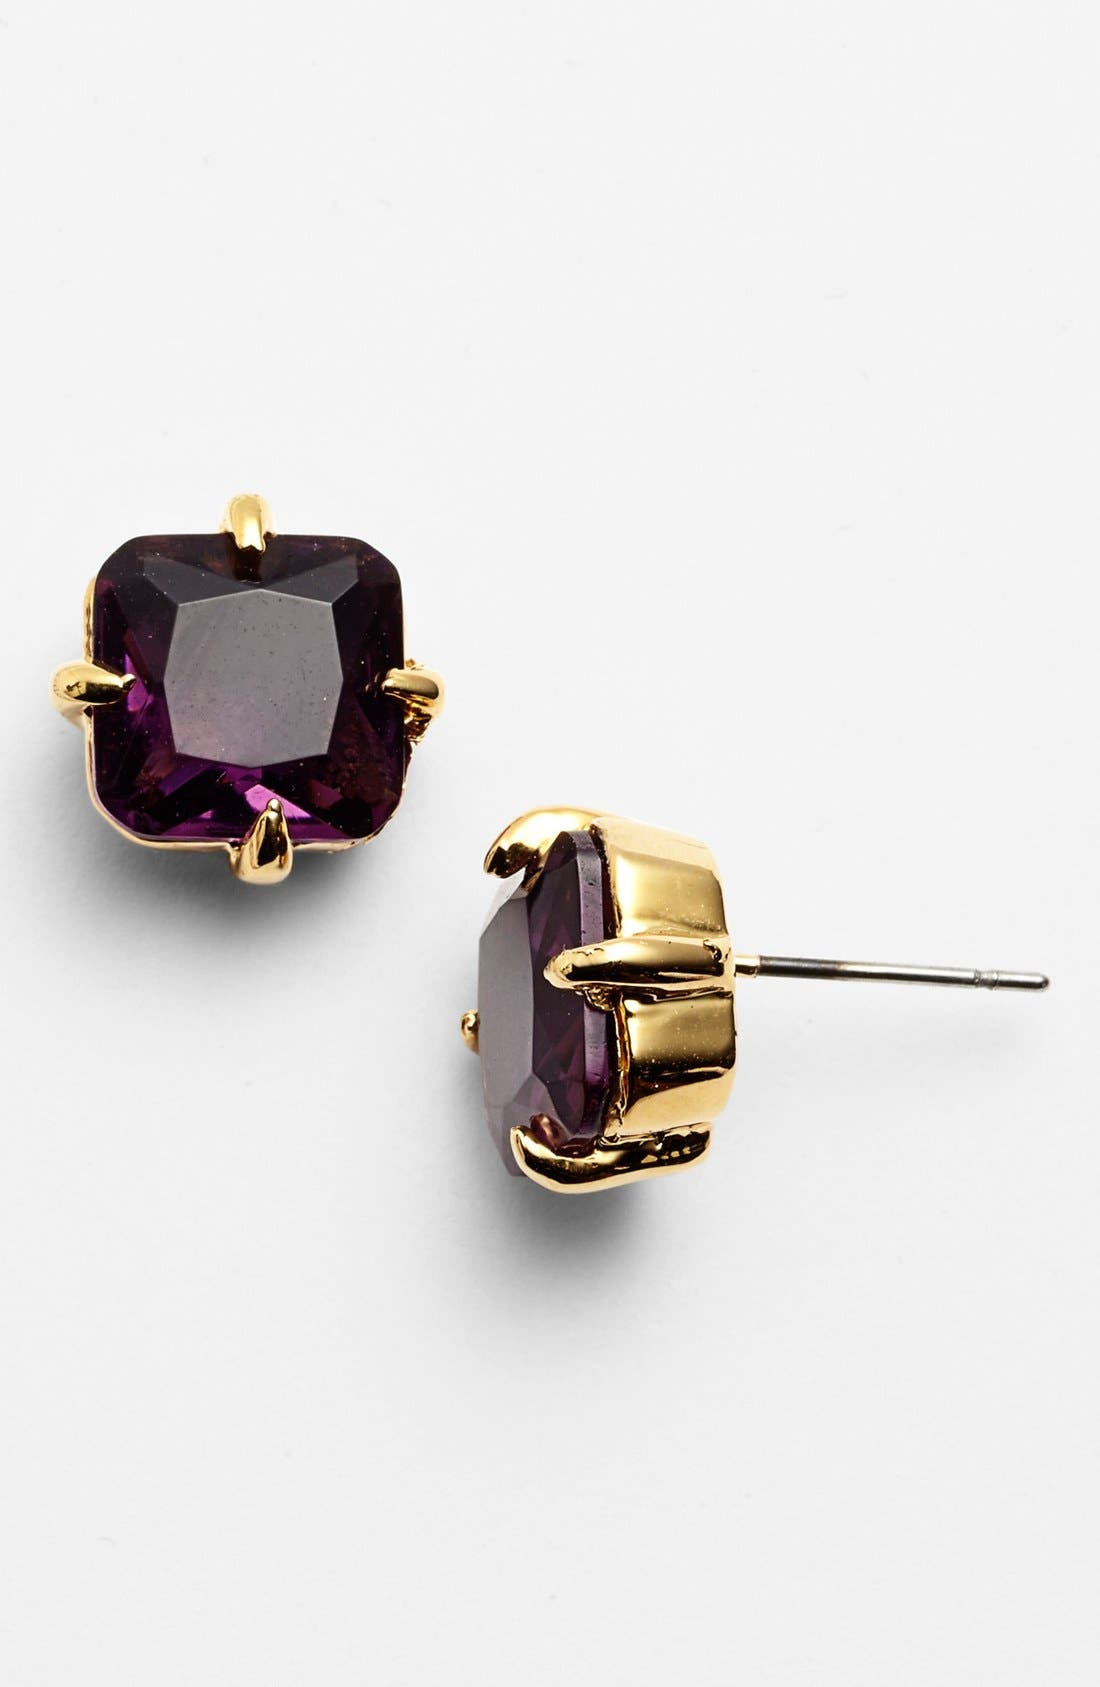 Main Image - Vince Camuto 'Jewel Purpose' Square Stone Stud Earrings